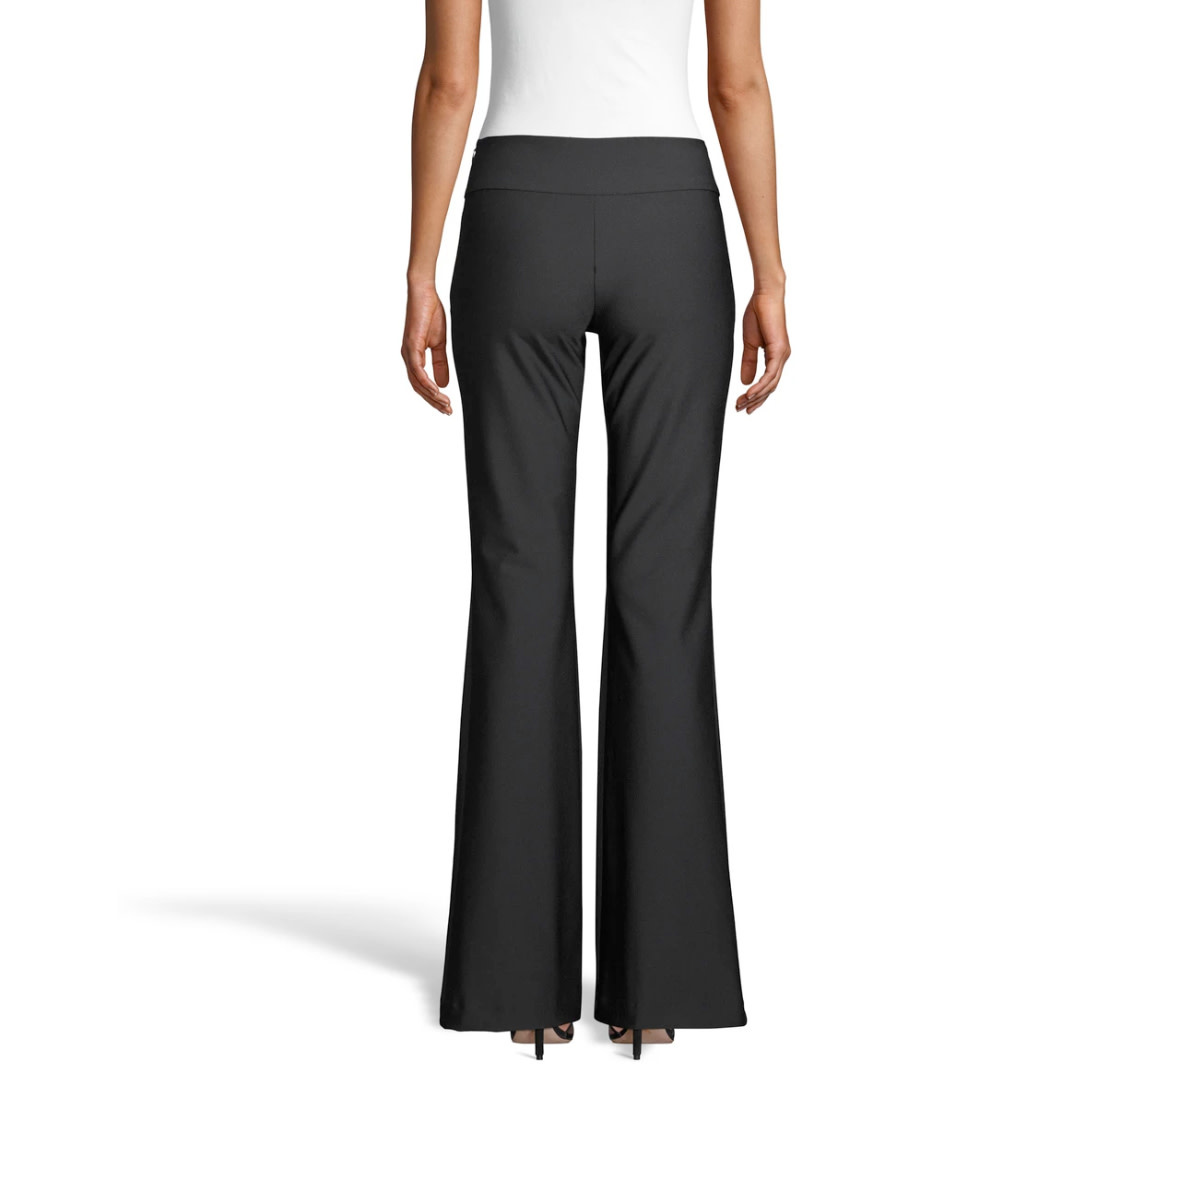 Nicole Miller Nicole Miller New City Stretch Flared Pant